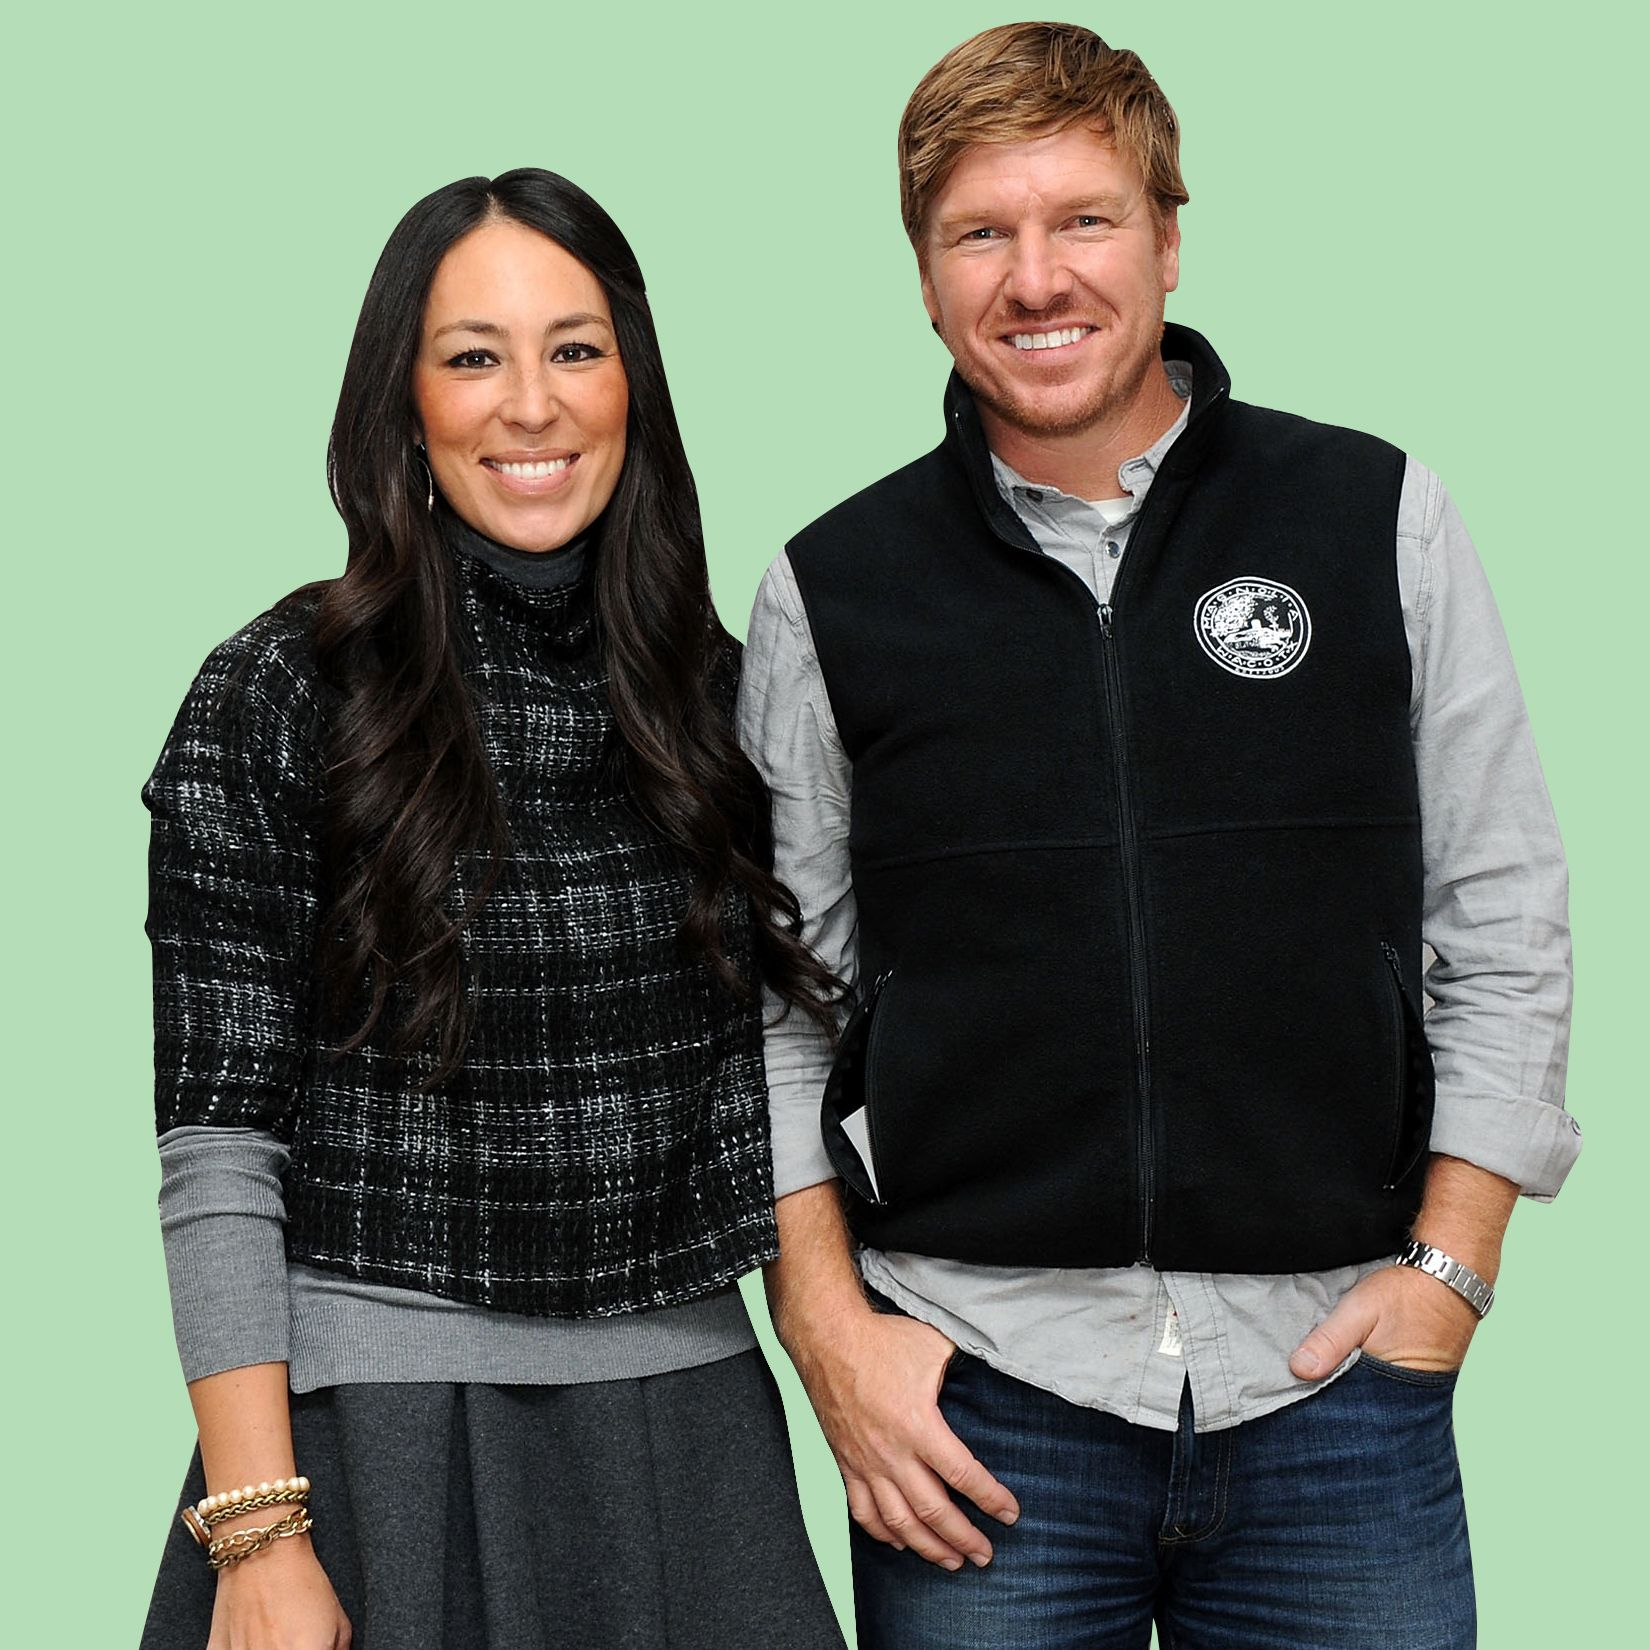 The Unique Way That Chip and Joanna Gaines Recycle Their Christmas Trees